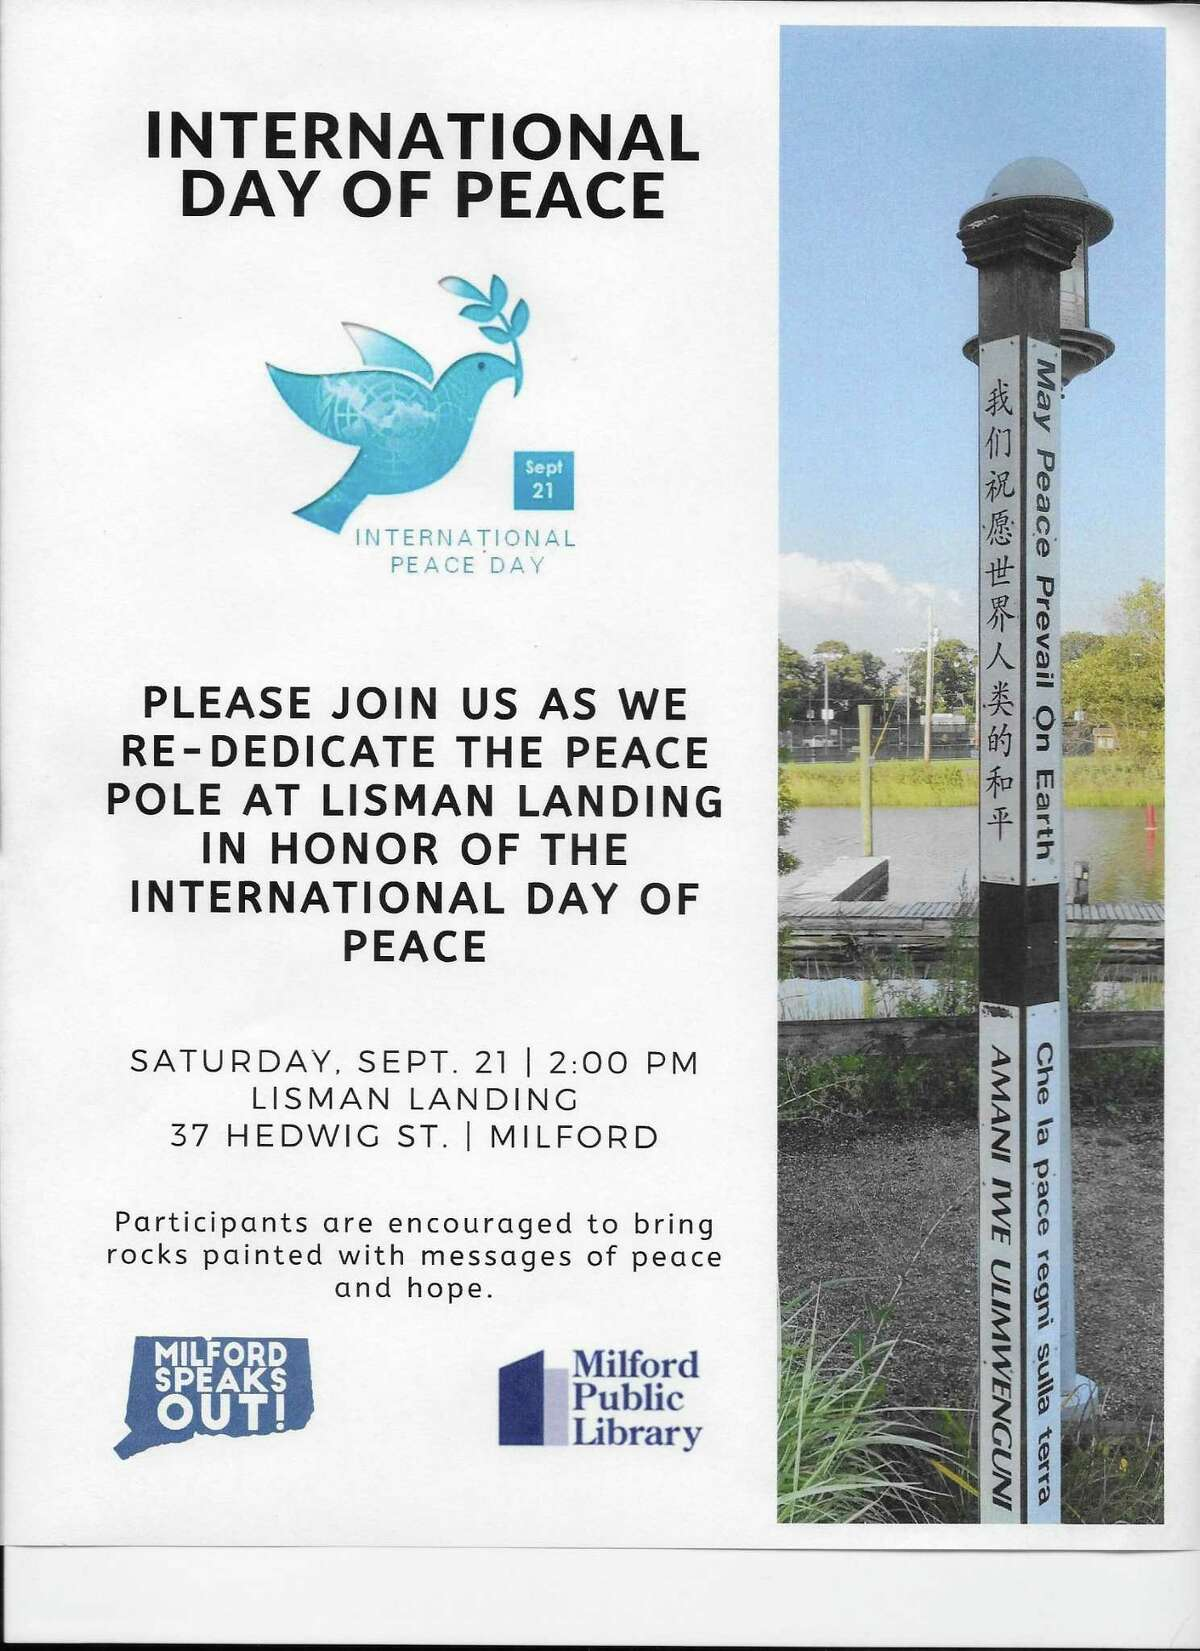 Milford Speaks Out (MSO), in partnership with the Milford Public Library, will host a World Peace Day event on Saturday, Sept. 21